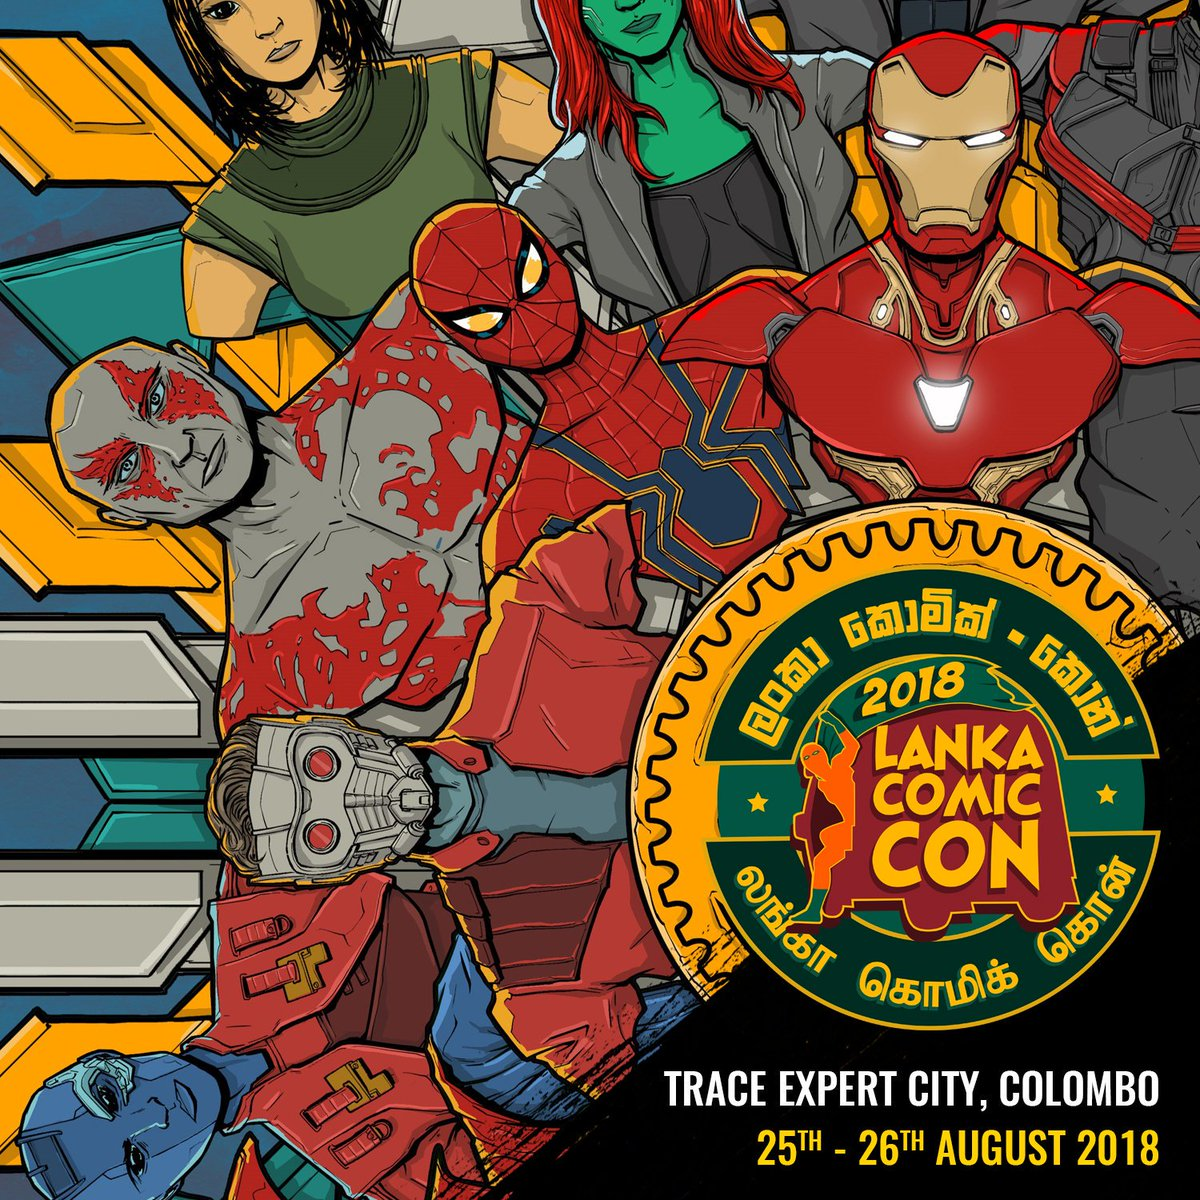 Most of you know this already. But thought of making it official--I will be at Lanka Comic Con 2018! If you&#39;re around Colombo and looking to support my work, this is the place. Drop by and say hi! <br>http://pic.twitter.com/IToiMogGEs